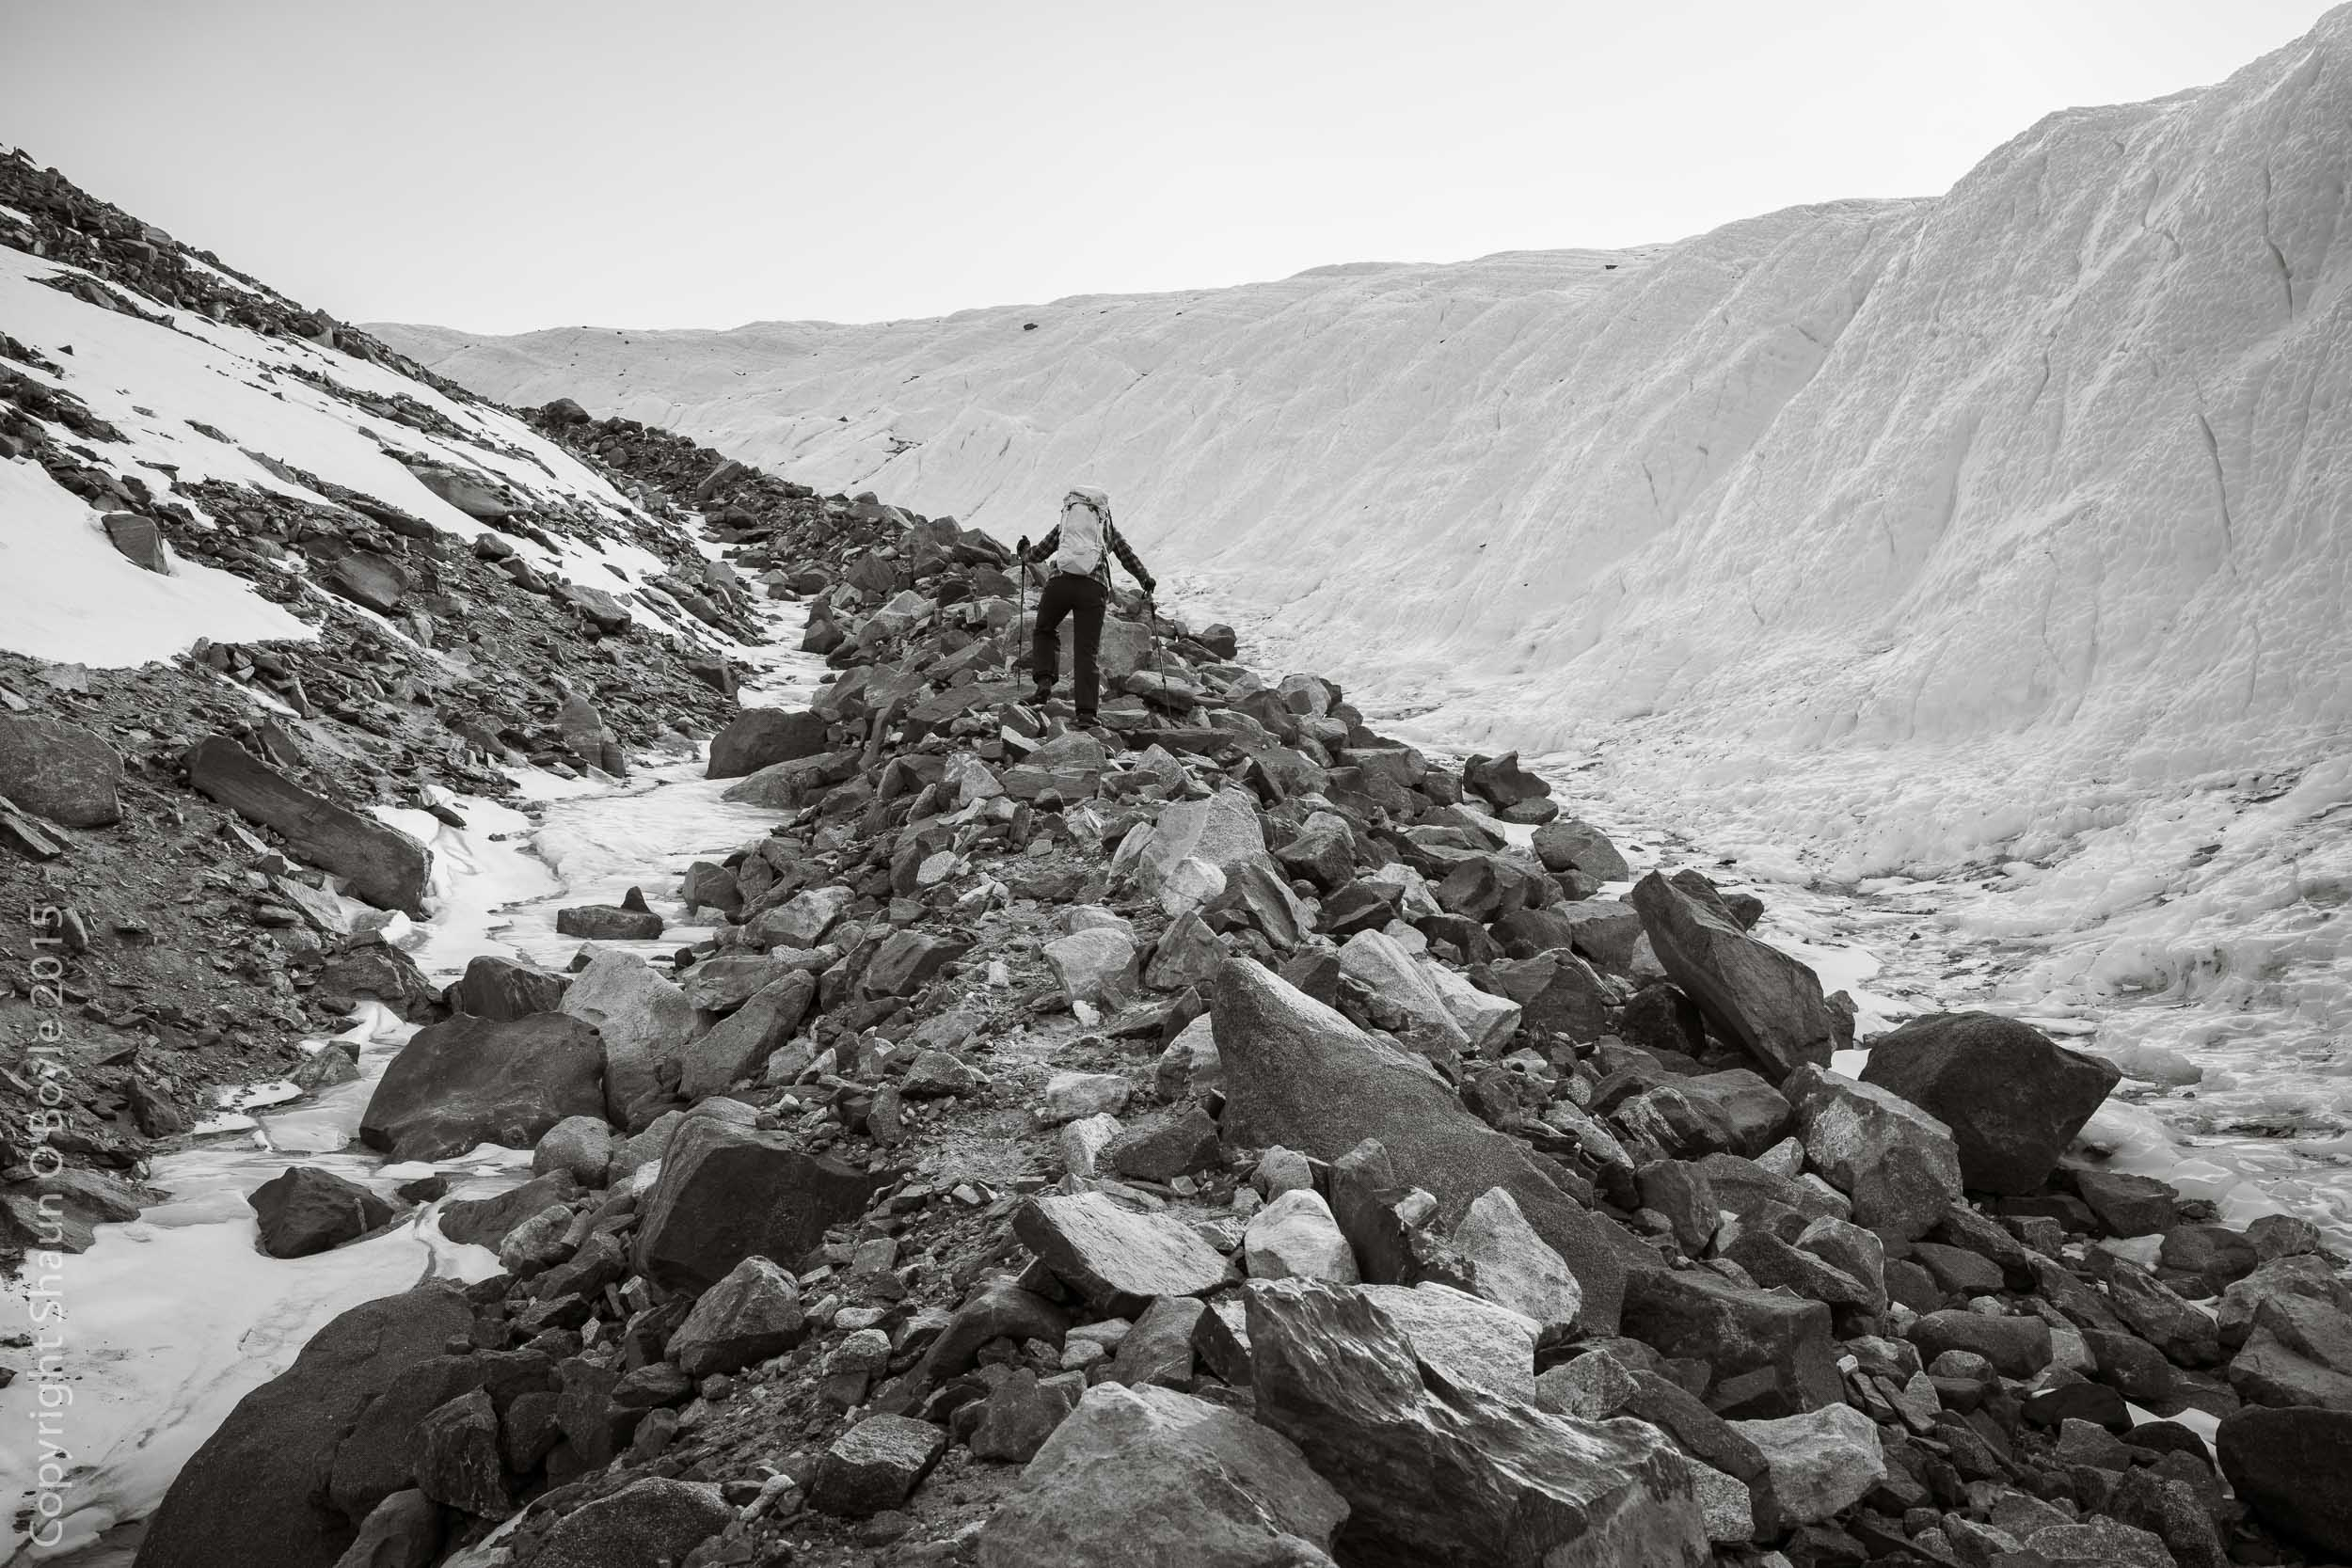 Renee leading up the lateral moraine of the Canada Glacier